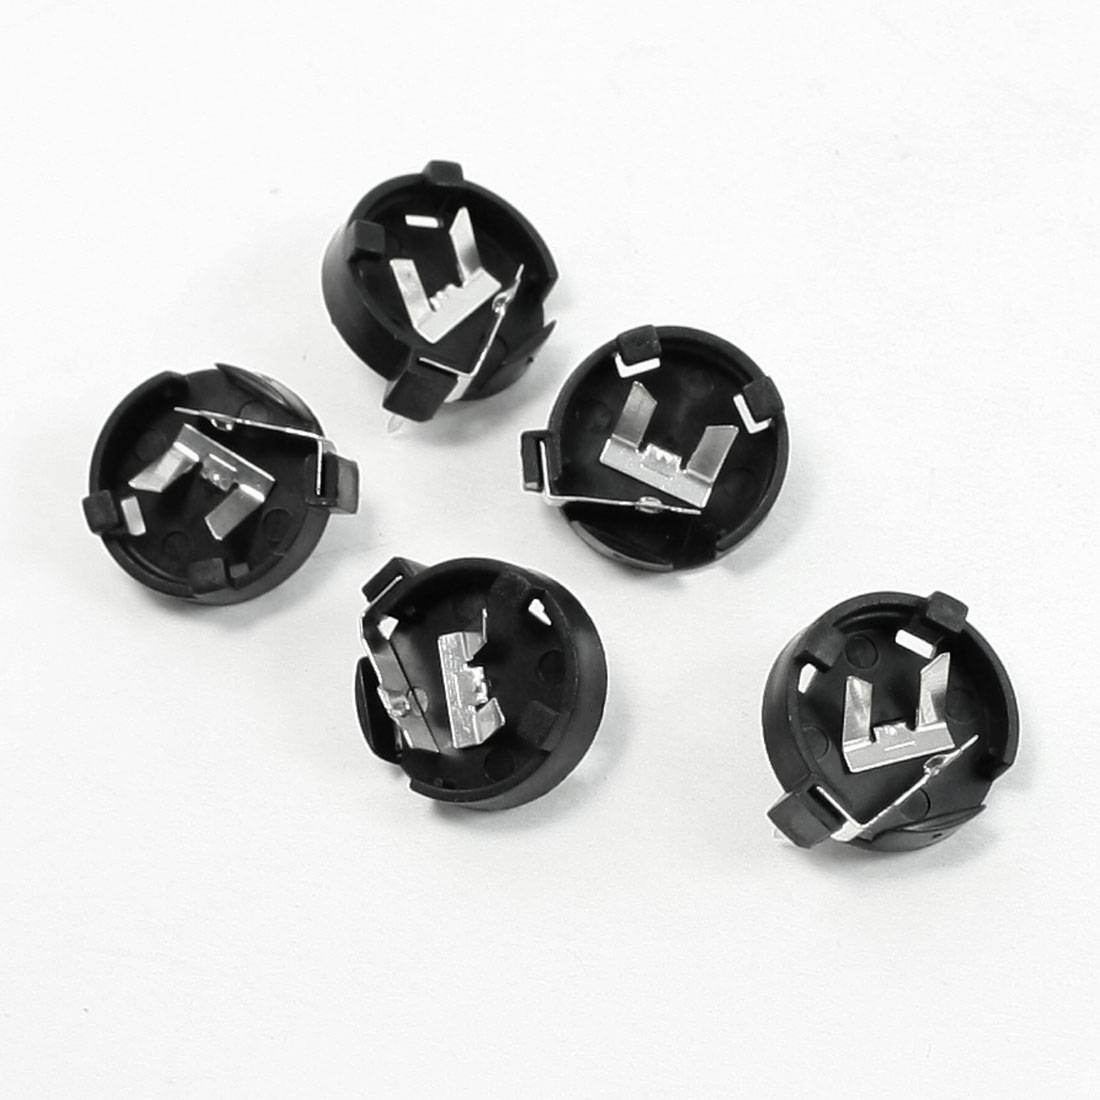 5 Pcs Coin Button Cell Battery Holders for CR1220 LIR1220